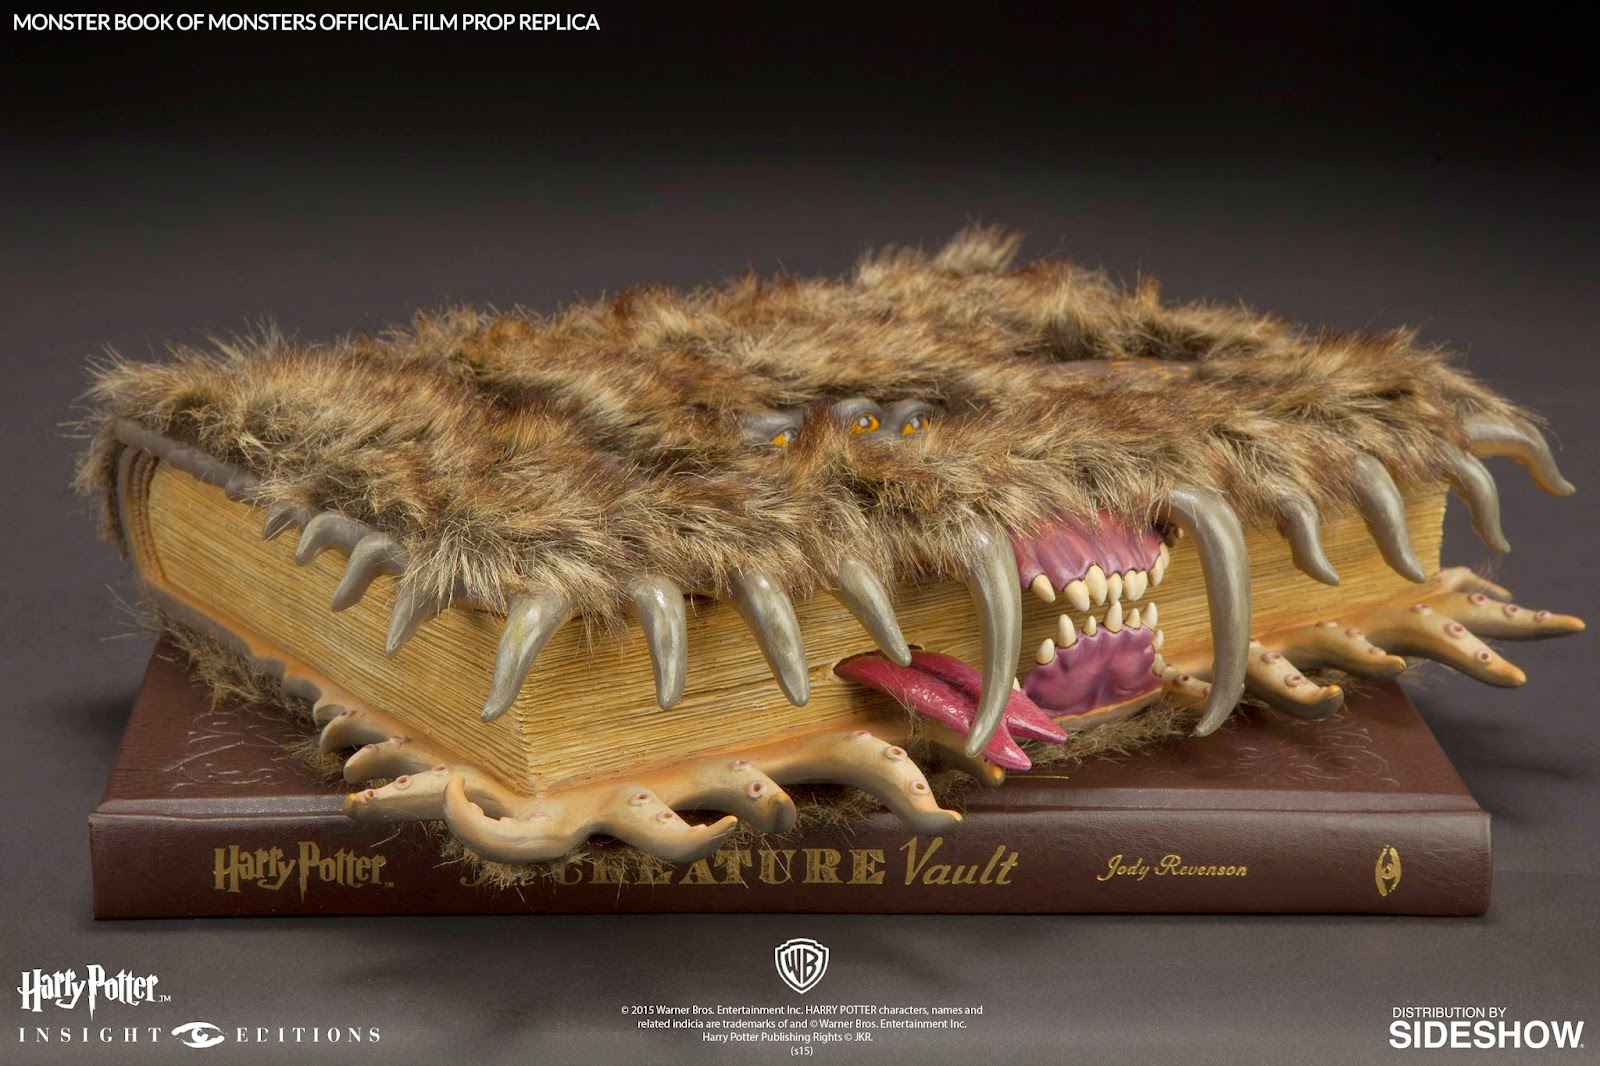 harry potter monster book replica